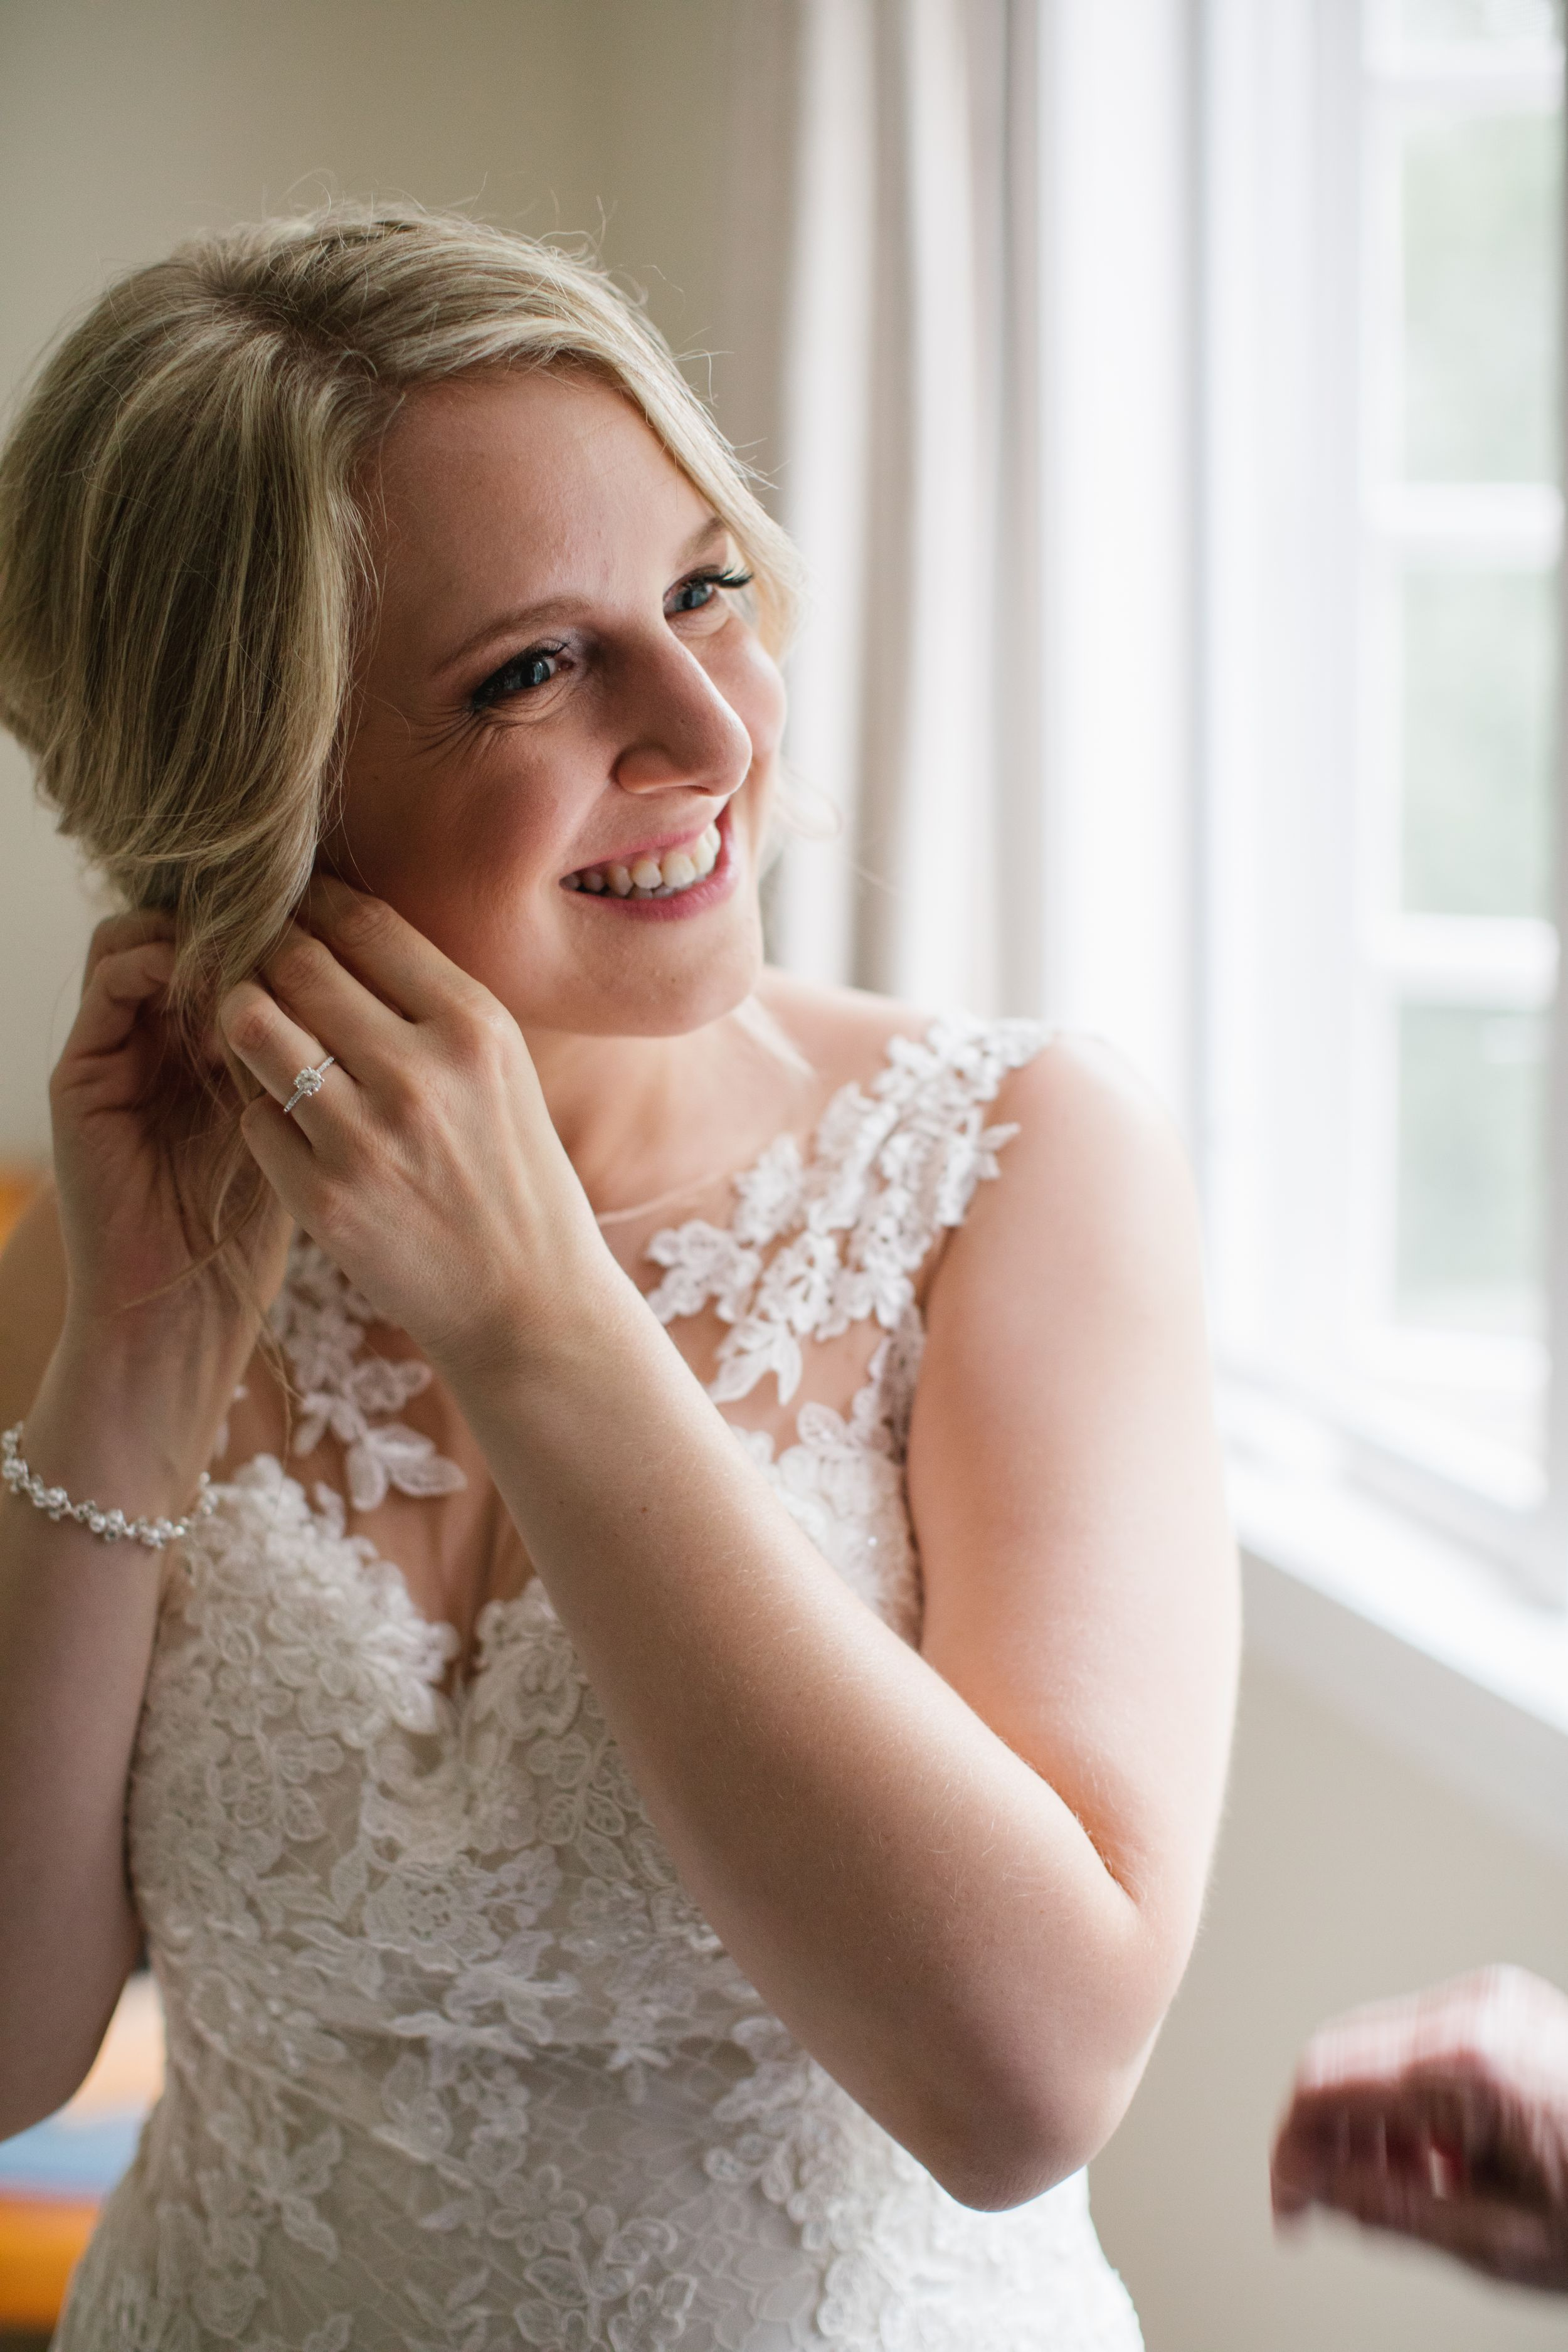 bride smiling while putting on her wedding earrings